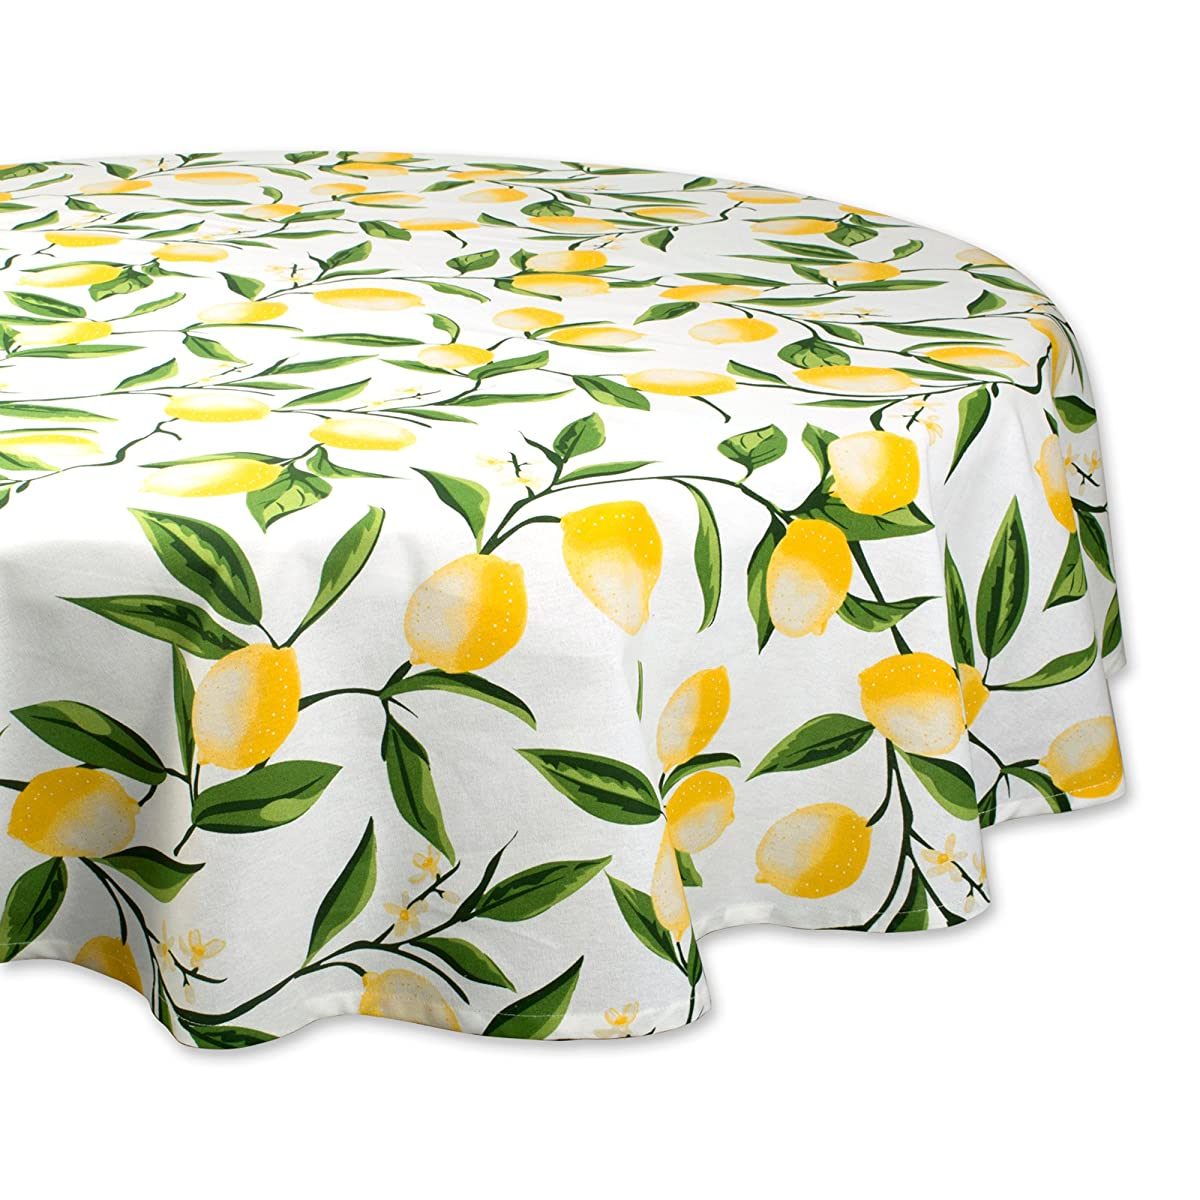 "DII Round Cotton Tablecloth for Autumn, Thanksgiving, Catering Events, Dinner Parties, Special Occasions or Everyday Use - 70"" Round, Lemon Bliss"